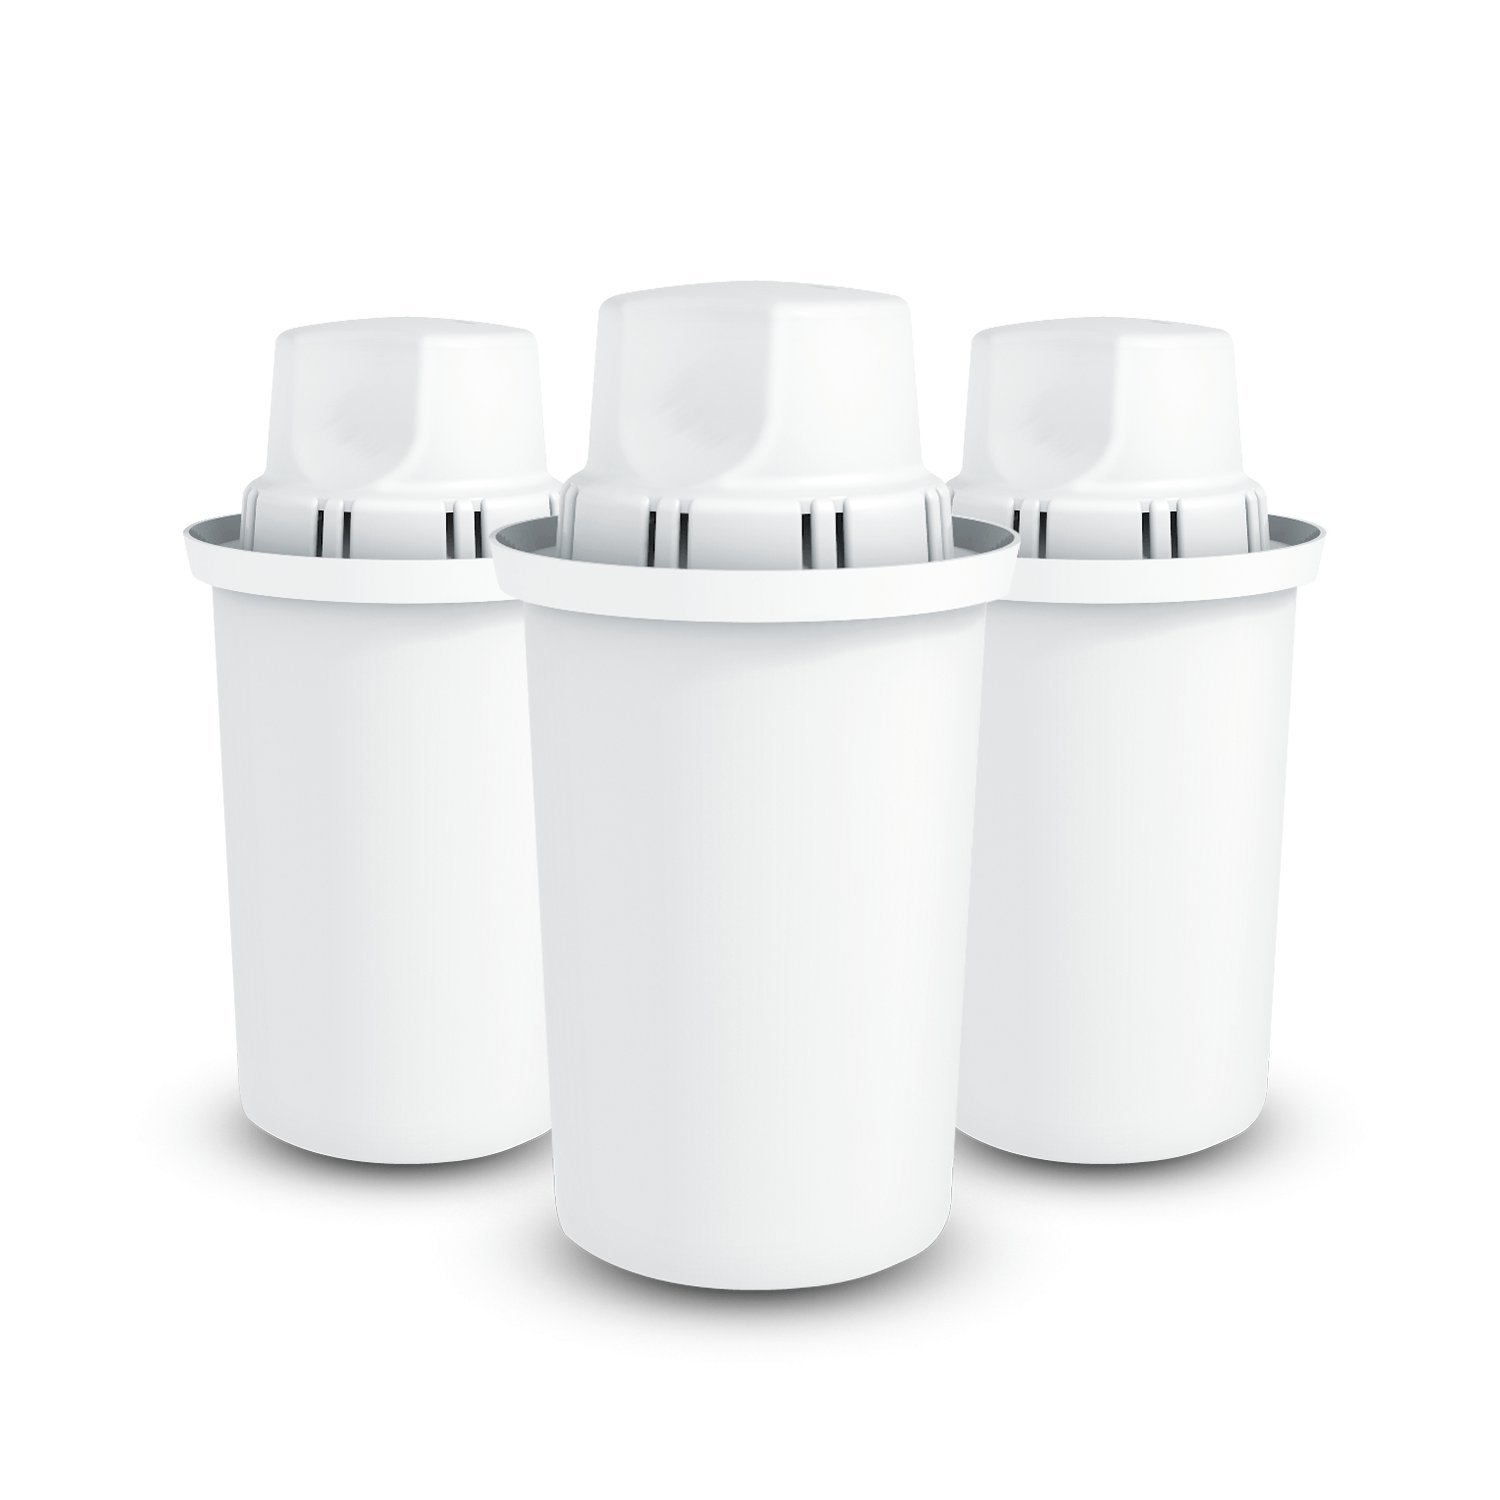 Dafi Standard Water Filter - Get rid of chlorine taste and odor and enjoy clean and tasty water (3-pack)